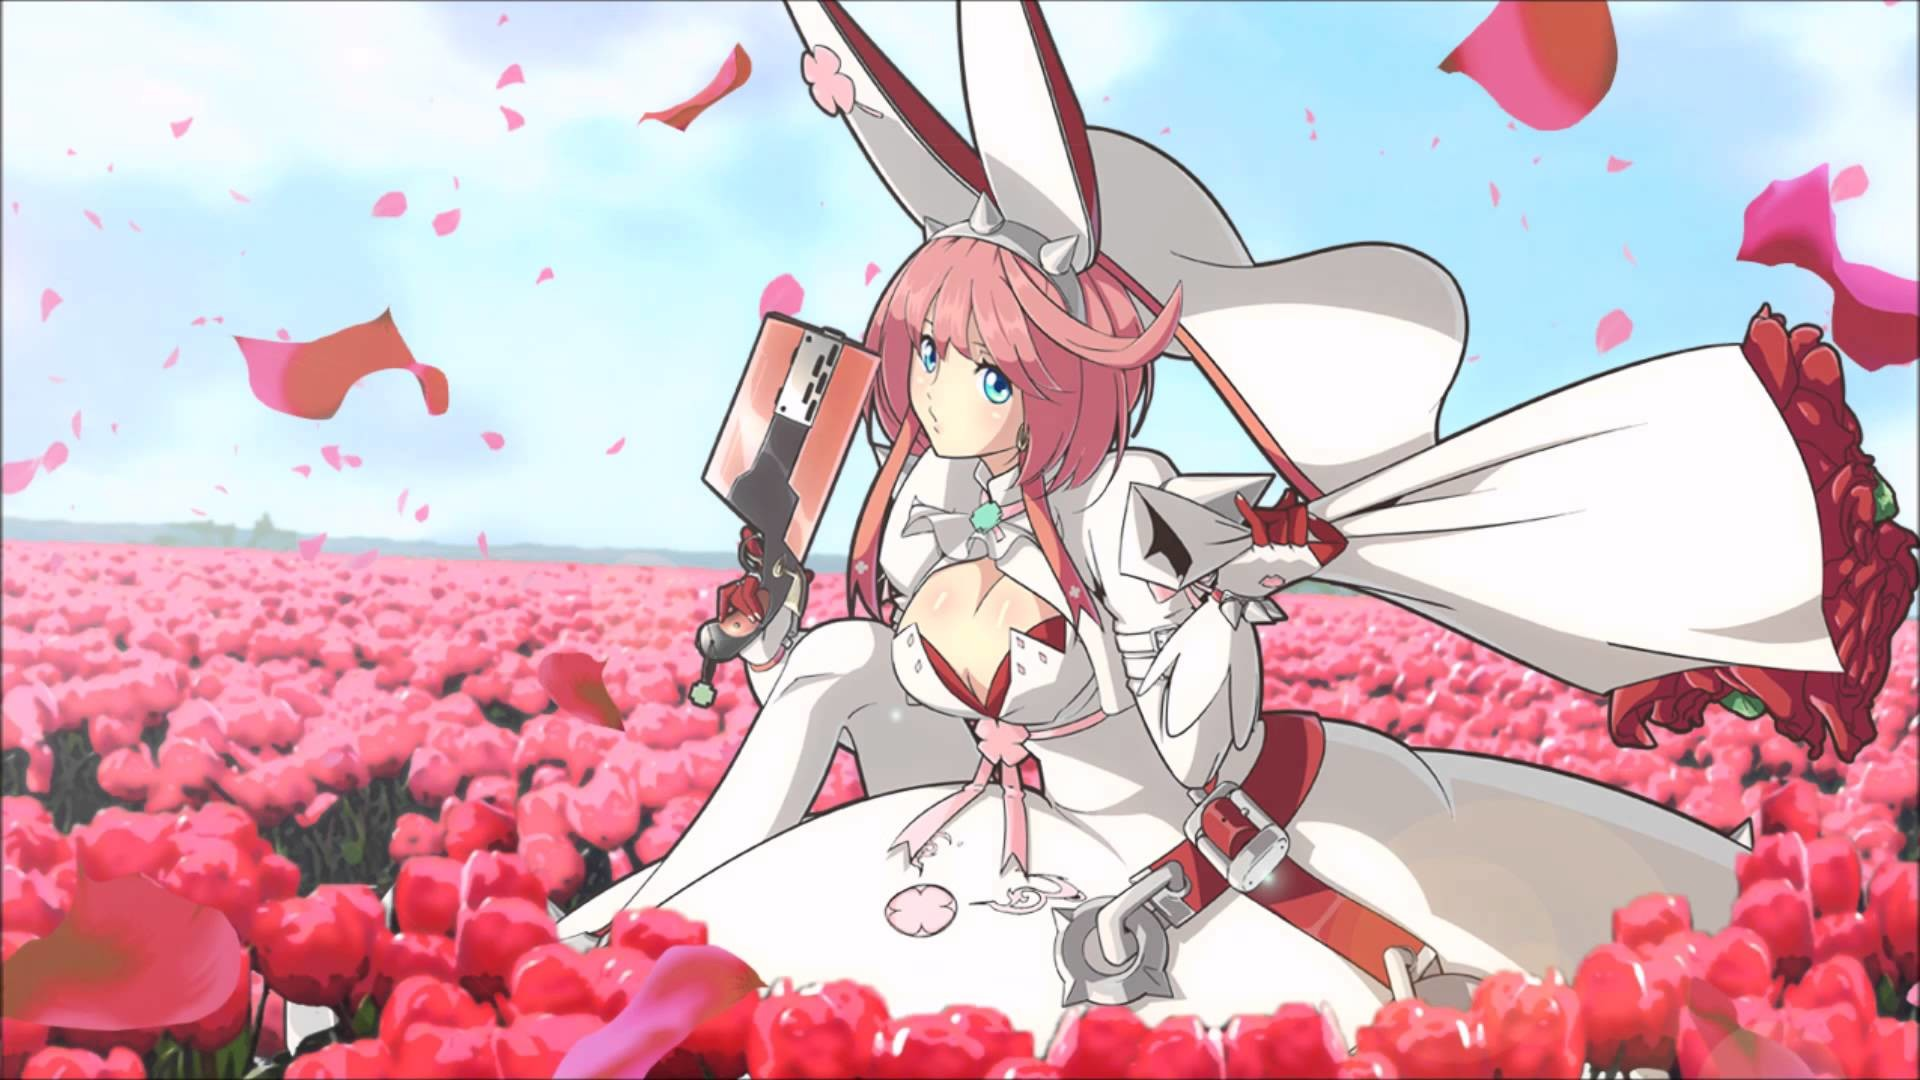 … Guilty Gear: Elphelt Valentine widescreen wallpapers